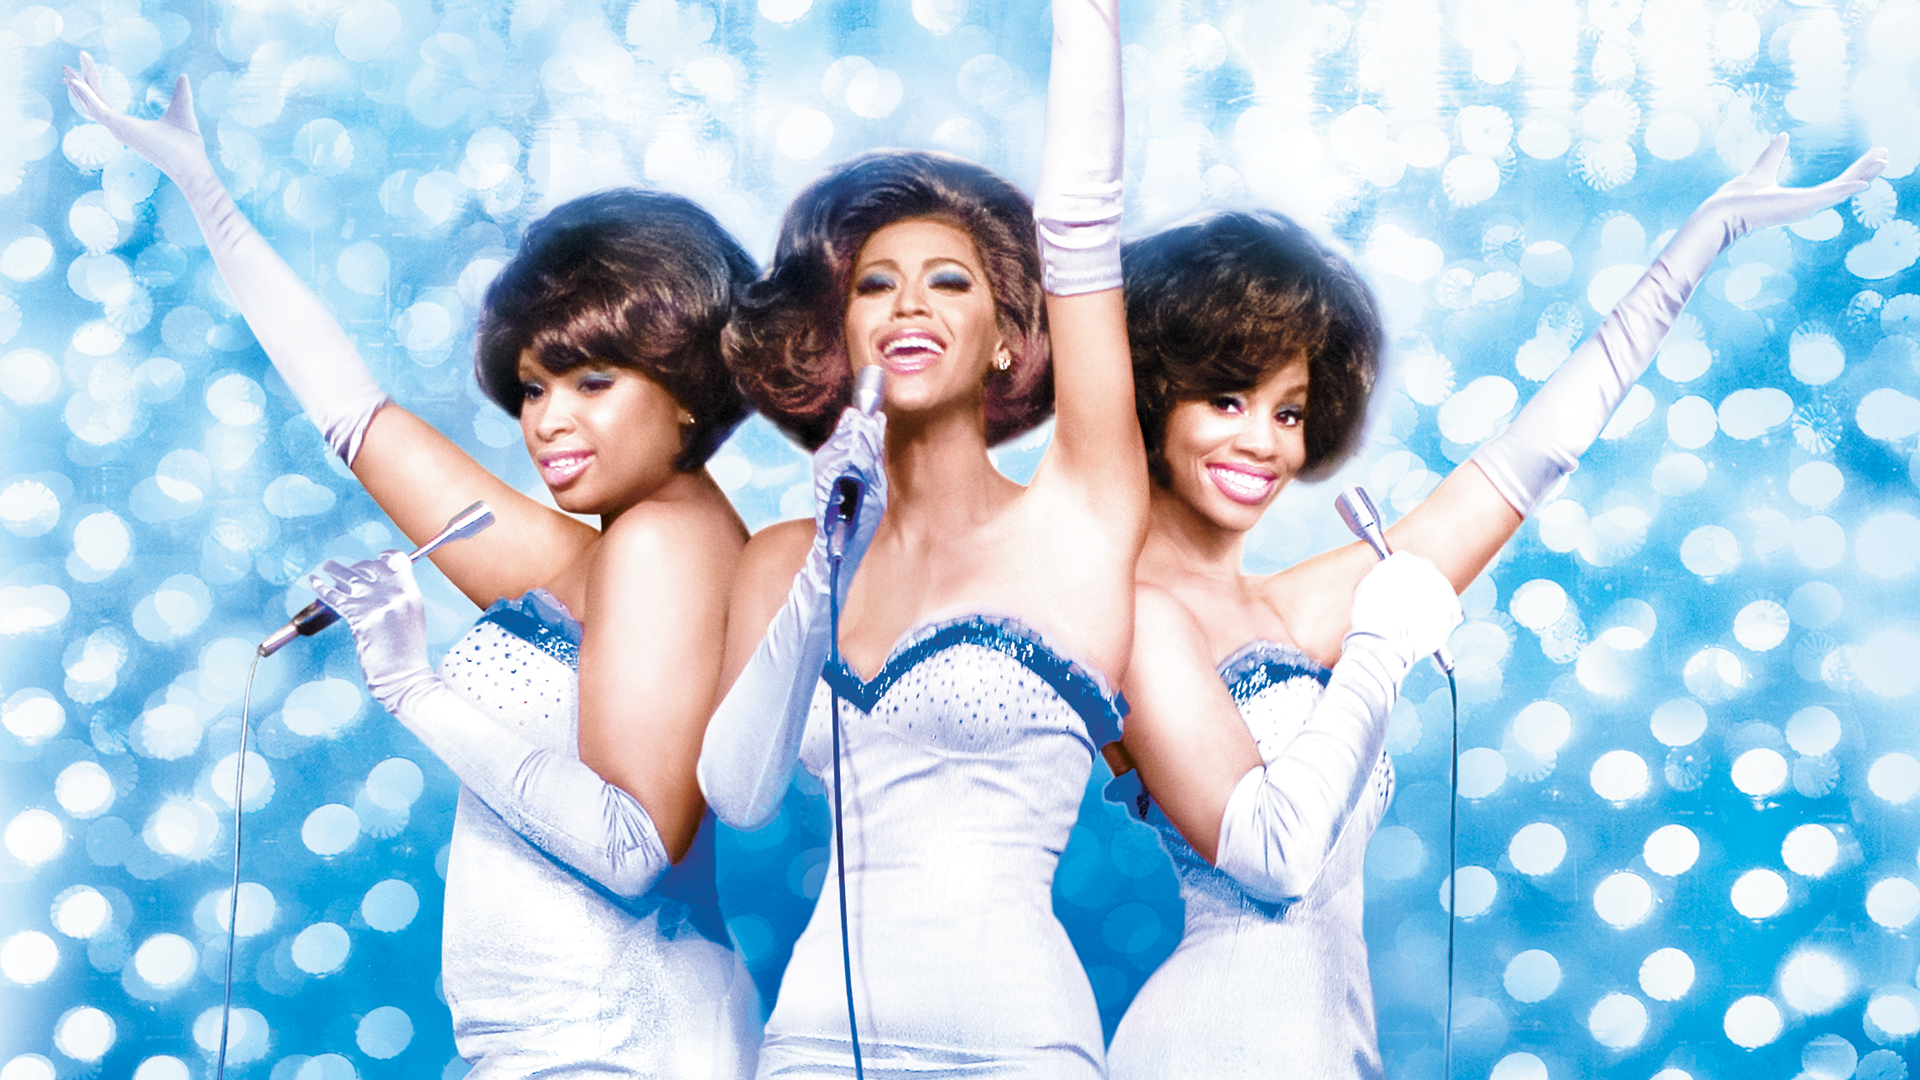 Dreamgirls 2